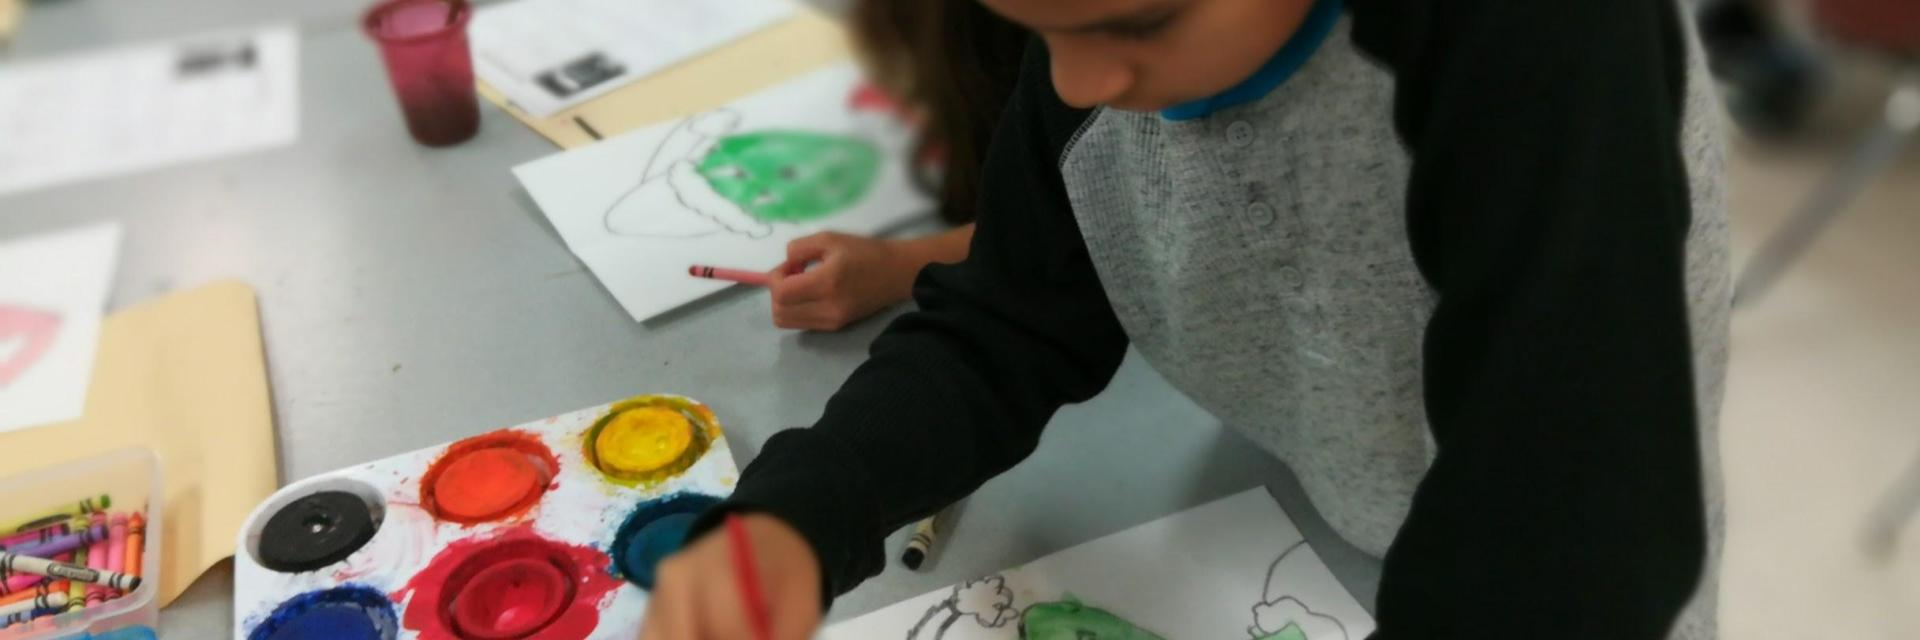 Third graders creating water color Grinches in art class.